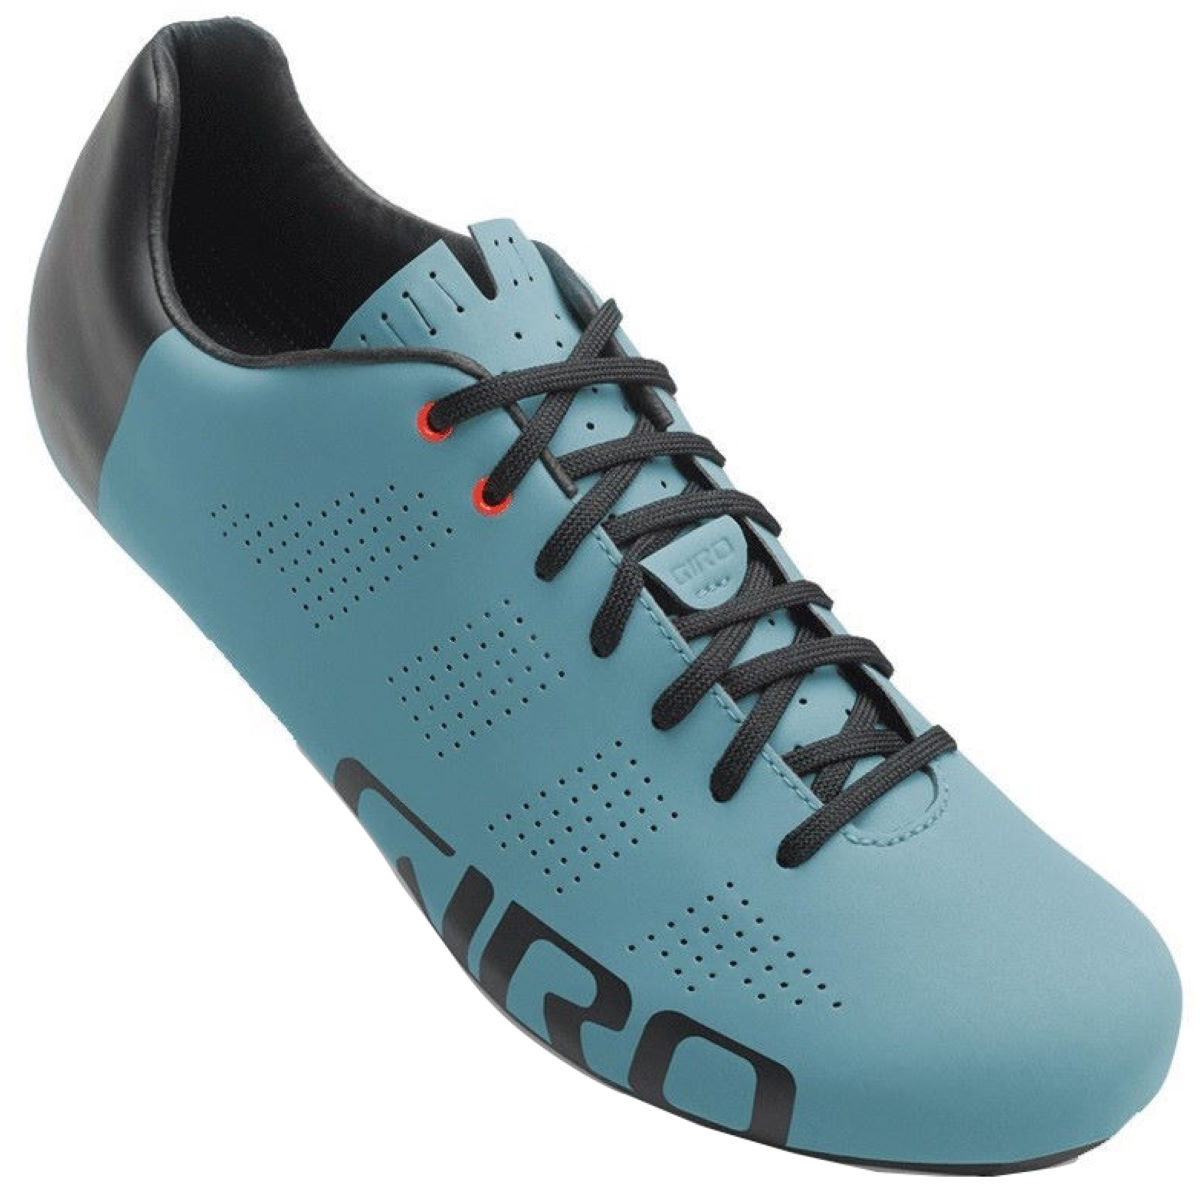 Zapatillas de carretera Giro Empire ACC (reflectantes) - Zapatillas para bicicletas de carretera